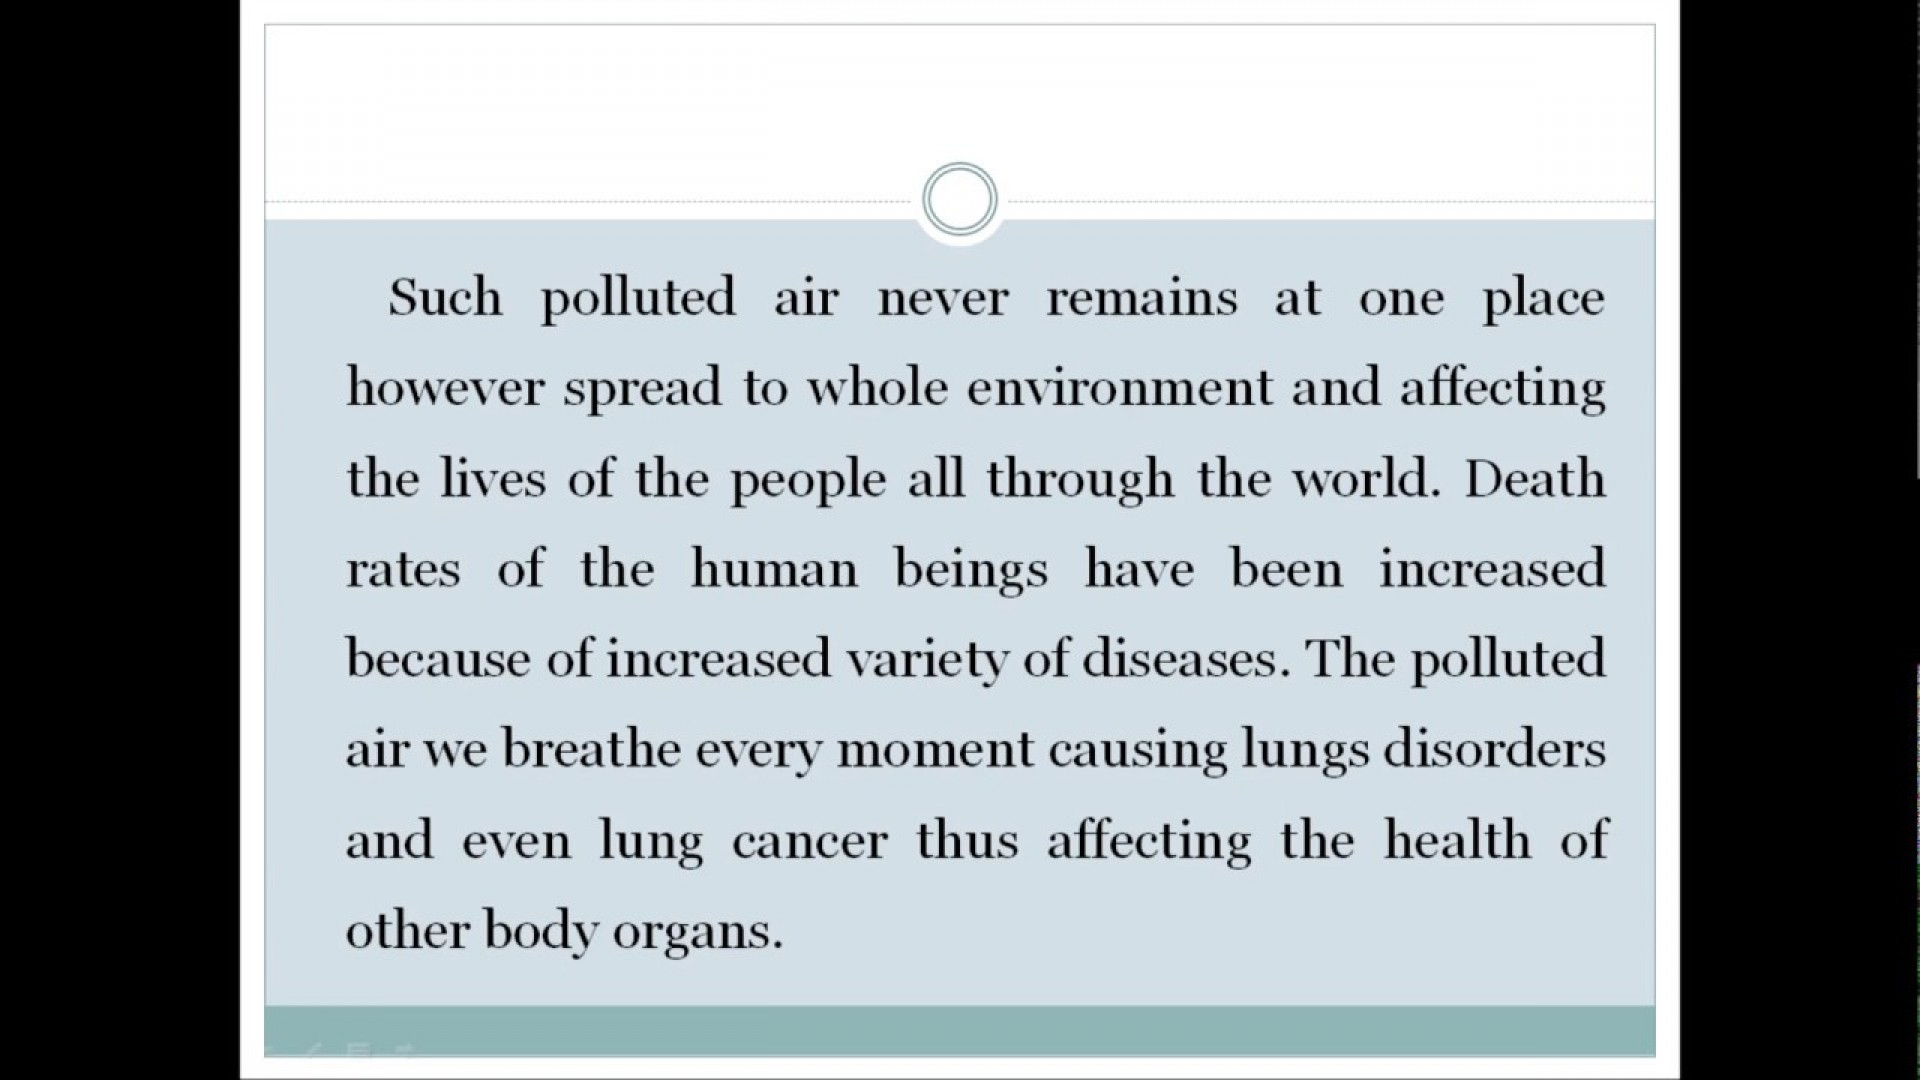 012 Essay Example Cause And Effect On Pollution Astounding Environmental Water About Air In Cities 1920